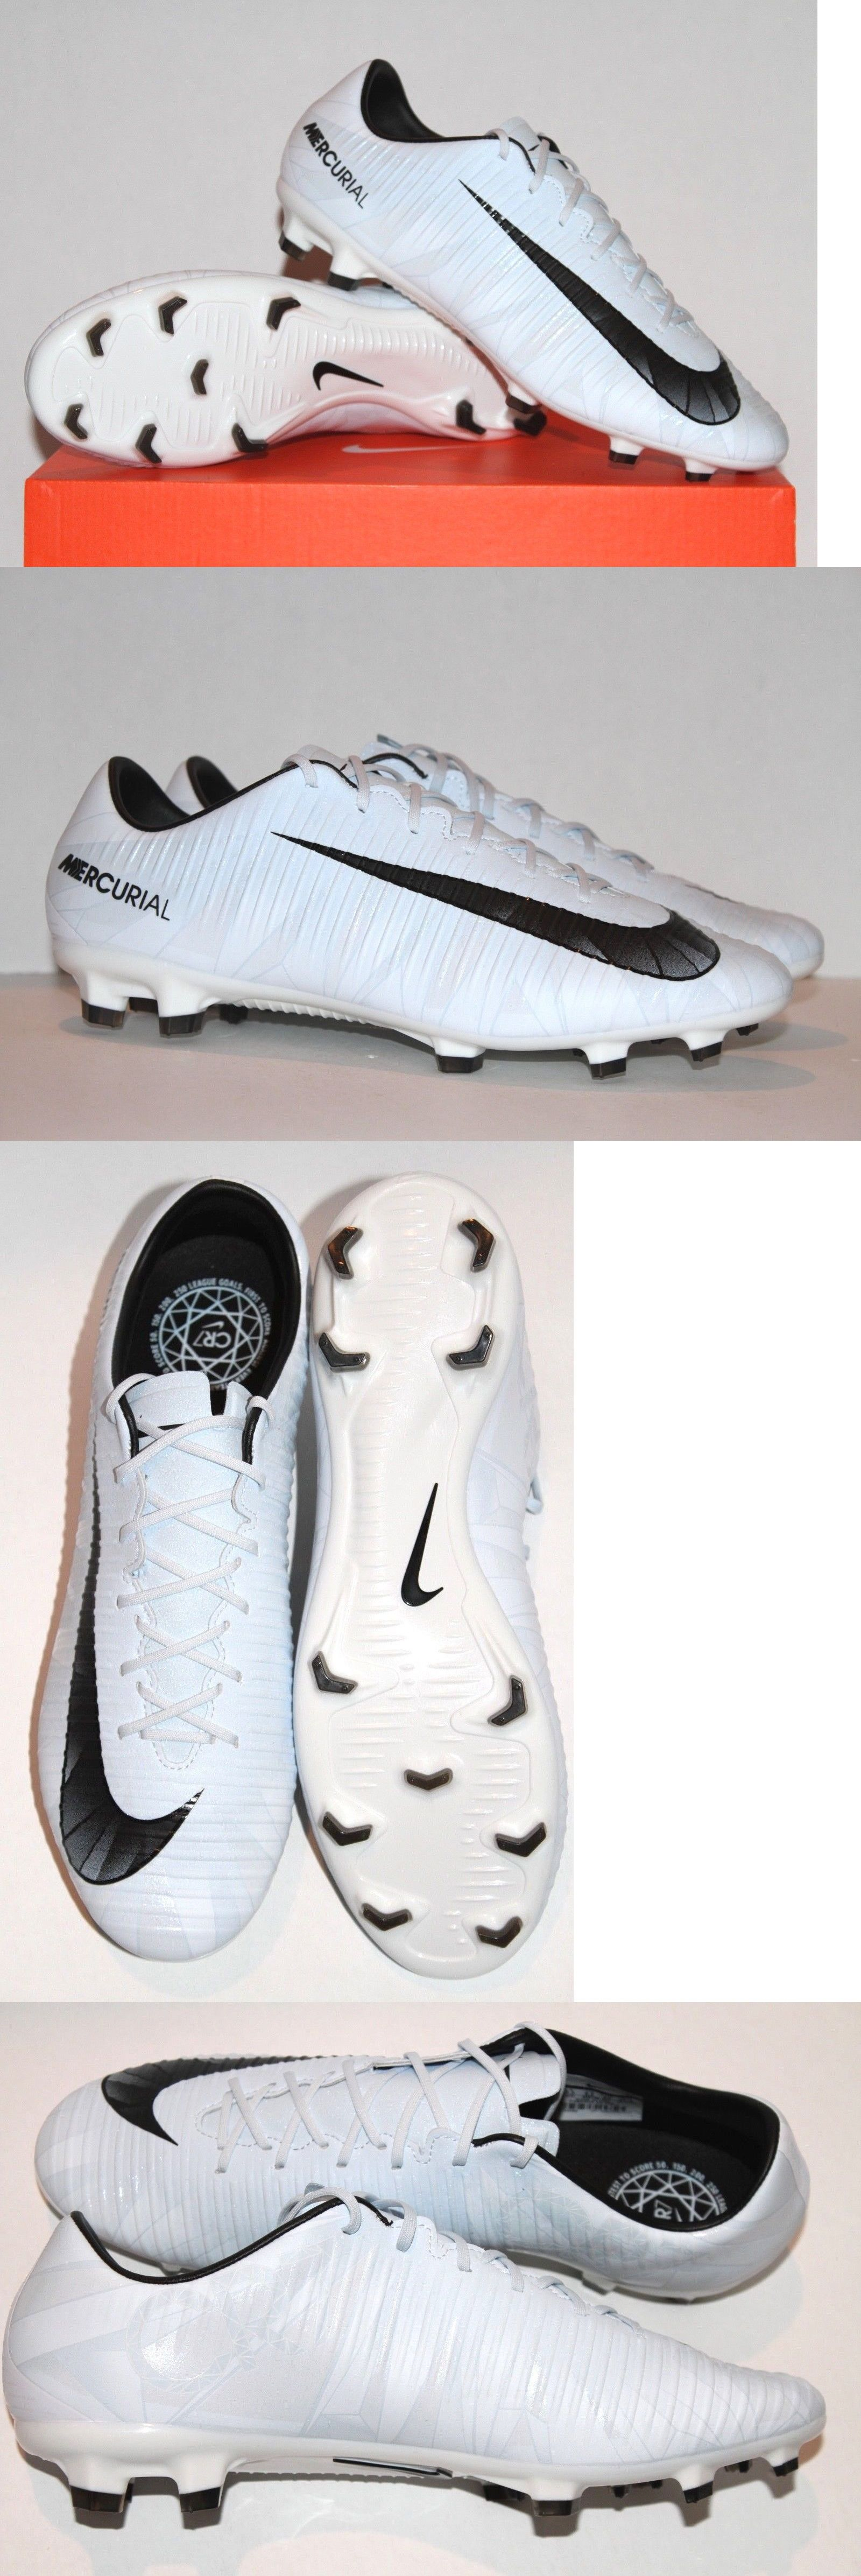 best website 17209 732ff Clothing Shoes and Accessories 159178  Nike Mercurial Veloce Iii Cr7 Fg  Soccer Cleats Mens 9.5